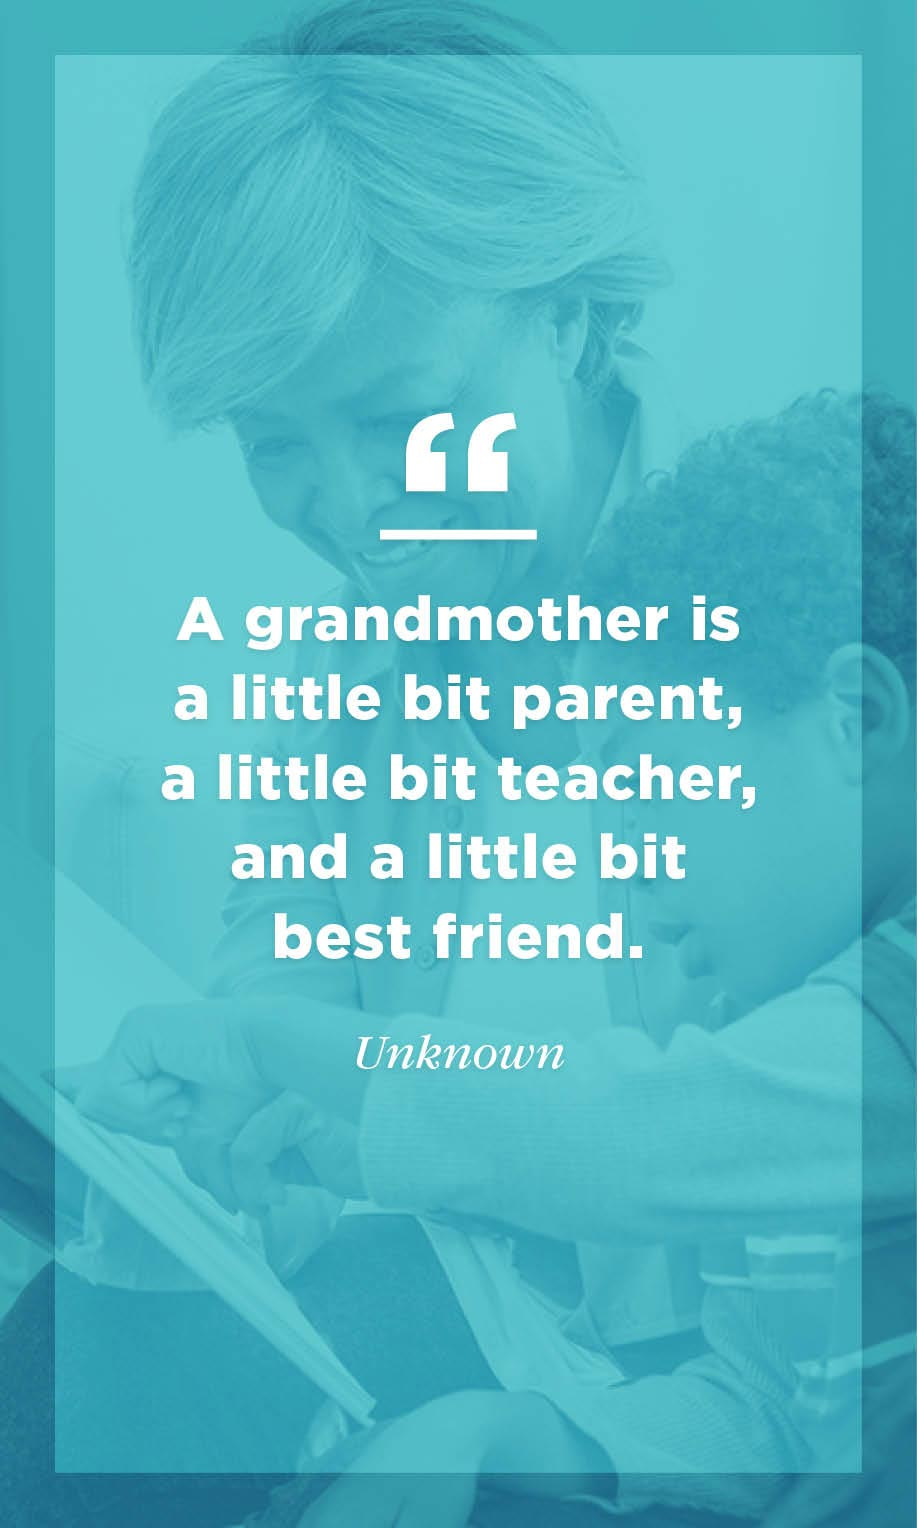 100 Thoughtful Mothers Day Quotes For 2018 Shutterfly